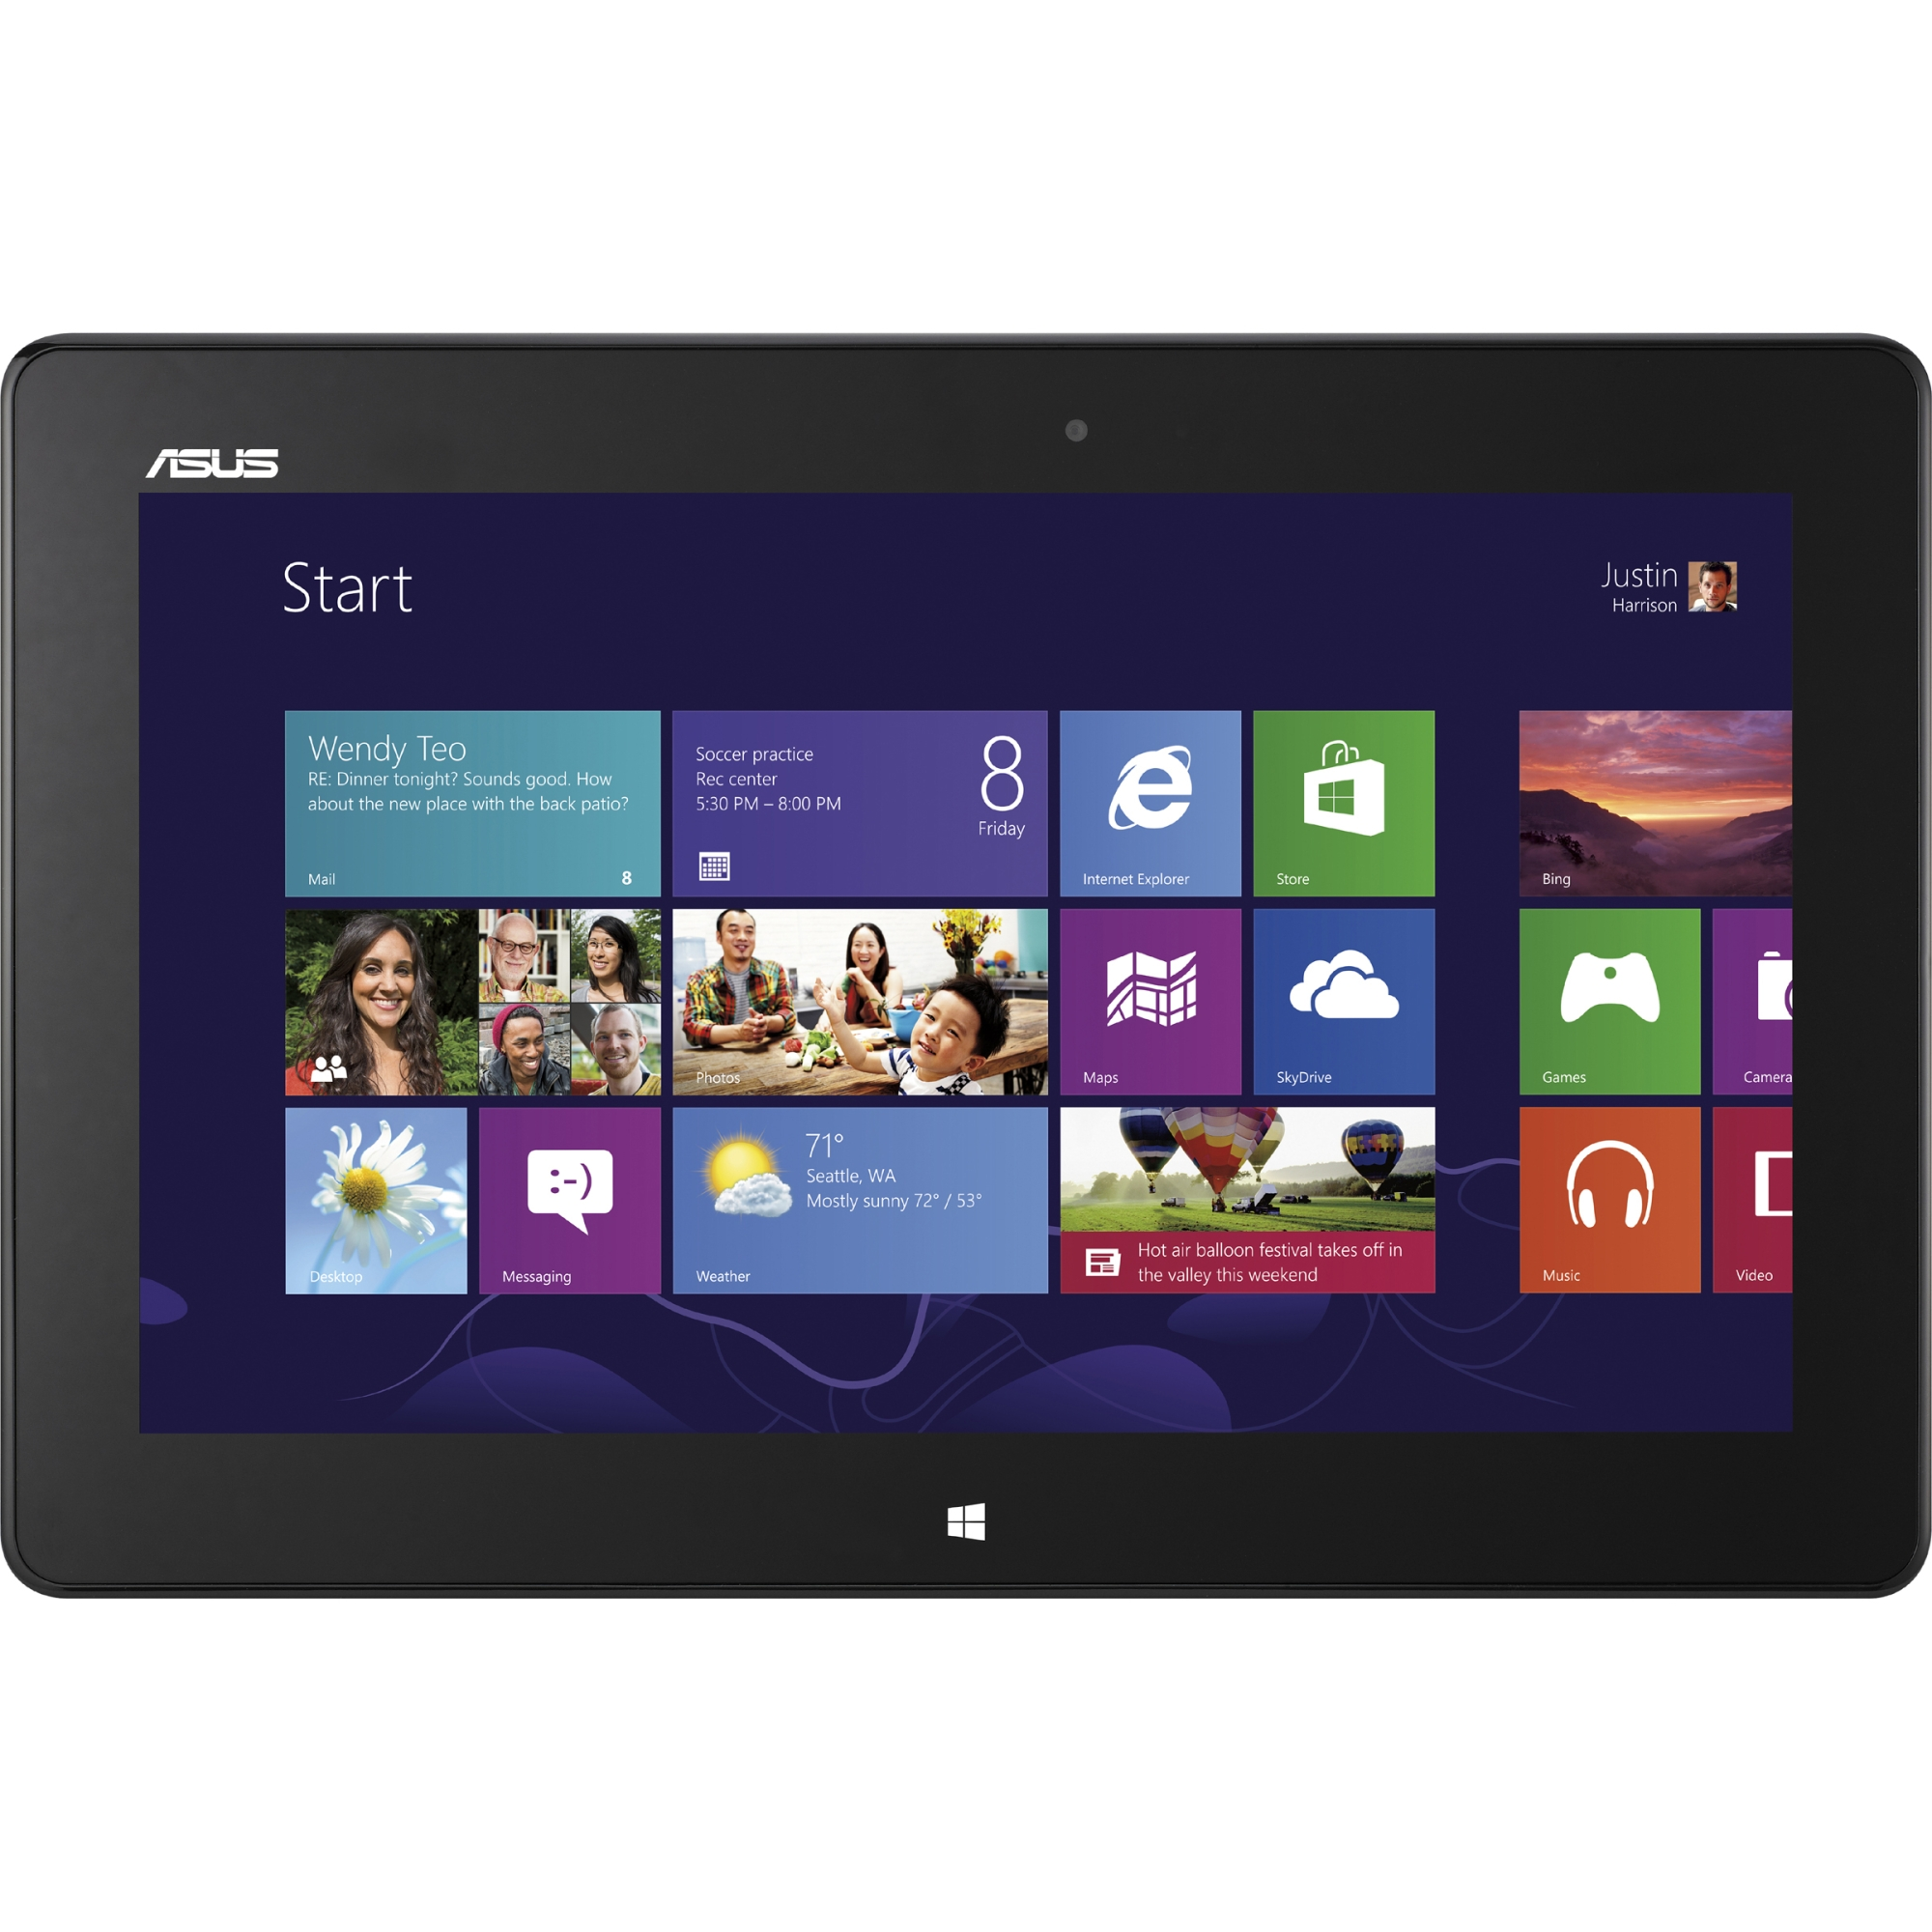 """Asus VivoTab Smart with WiFi 10.1"""" Touchscreen Tablet PC Featuring Windows 8 Operating System, Black"""